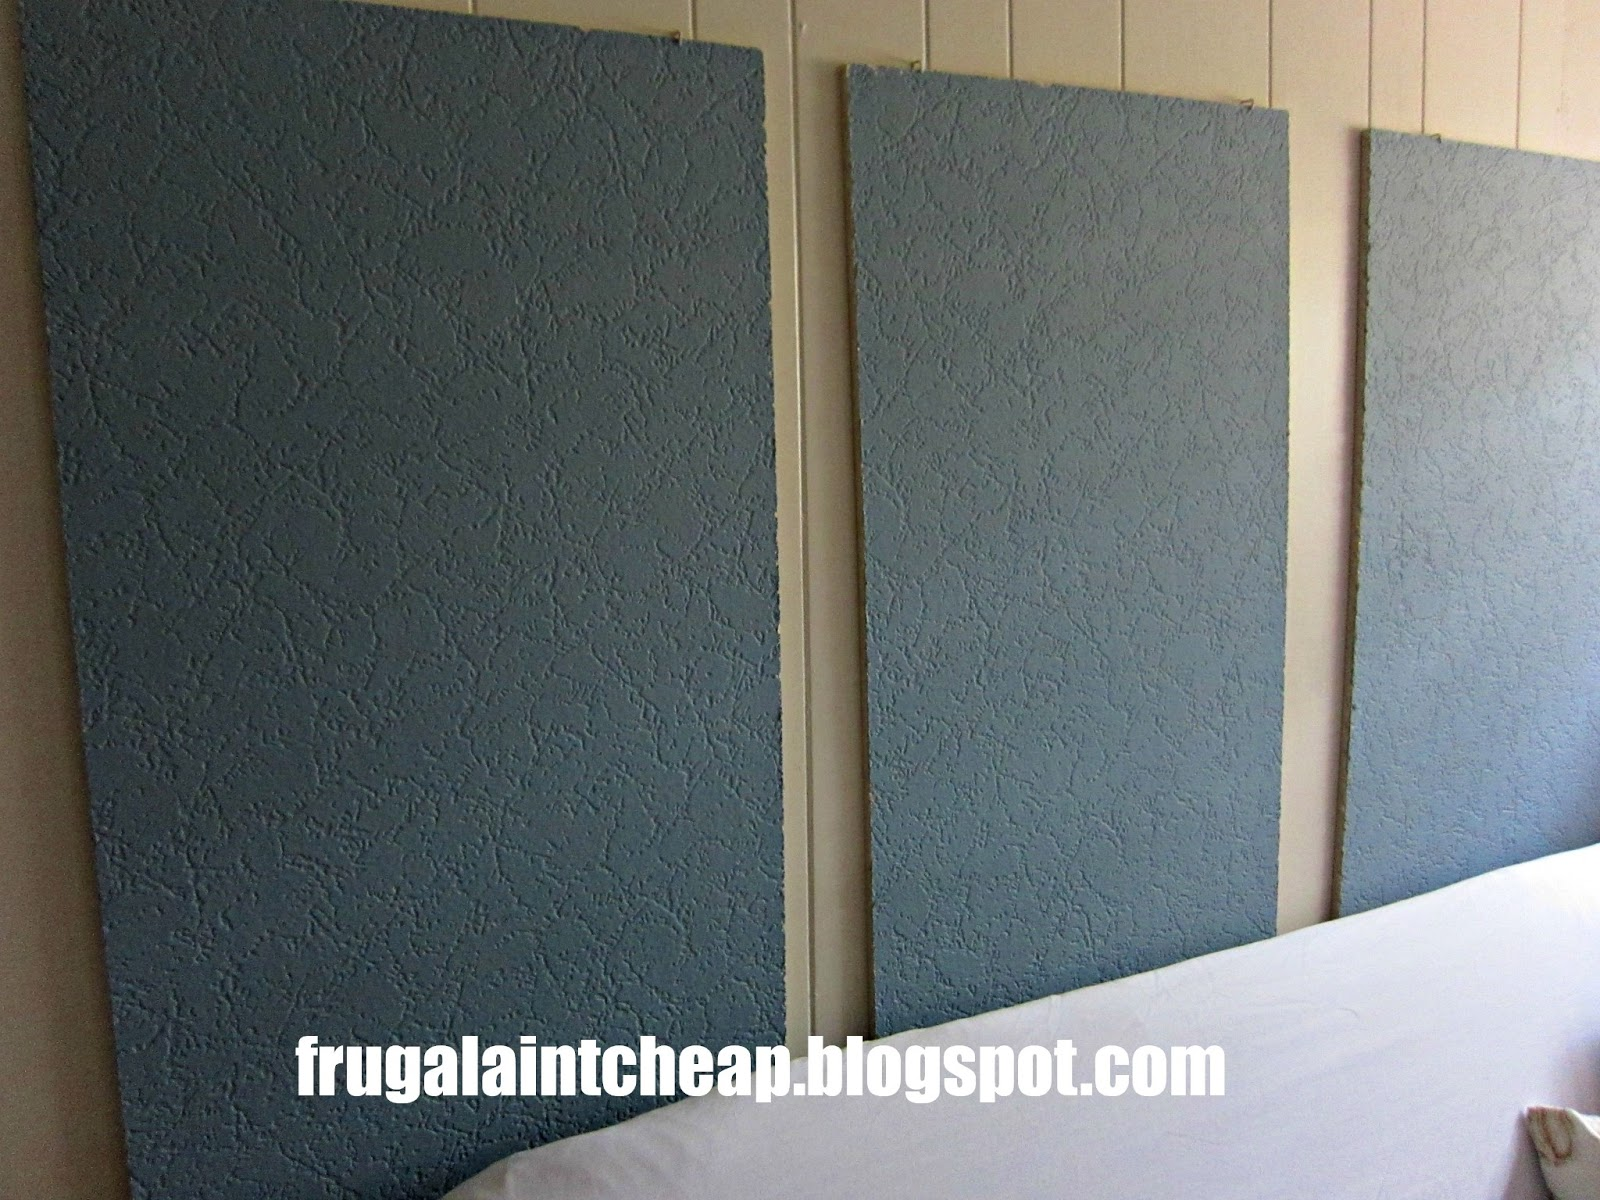 Diy Soundproof Room Divider Frugal Ain 39t Cheap Soundproofing A Room